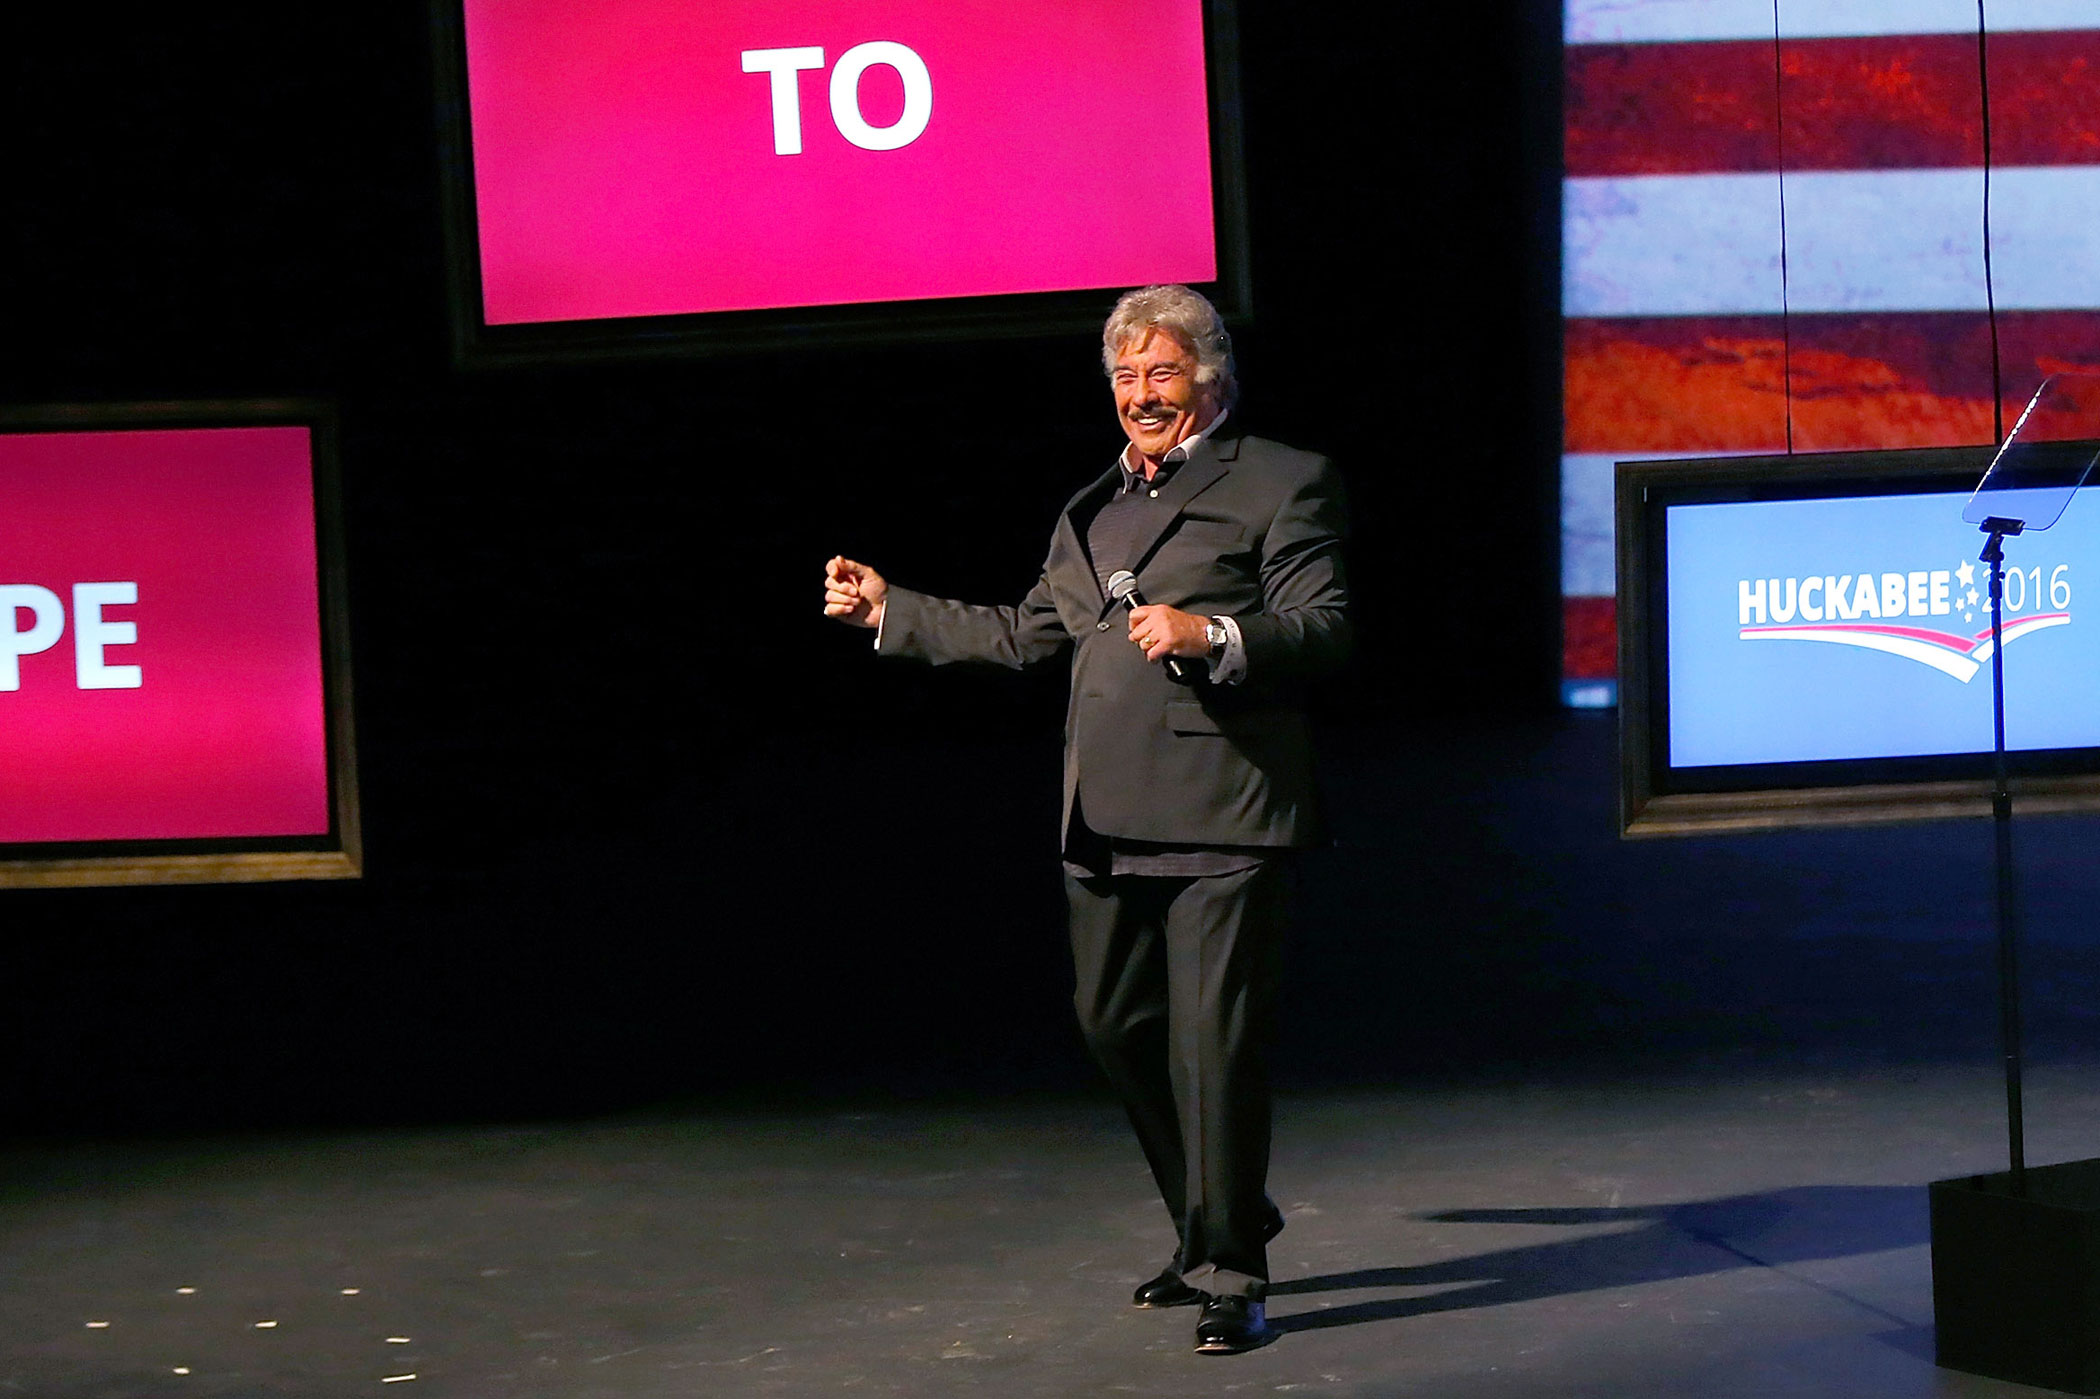 Entertainer Tony Orlando performed during Arkansas Gov. Mike Huckabee's announcement of his candidacy for the 2016 presidential race.